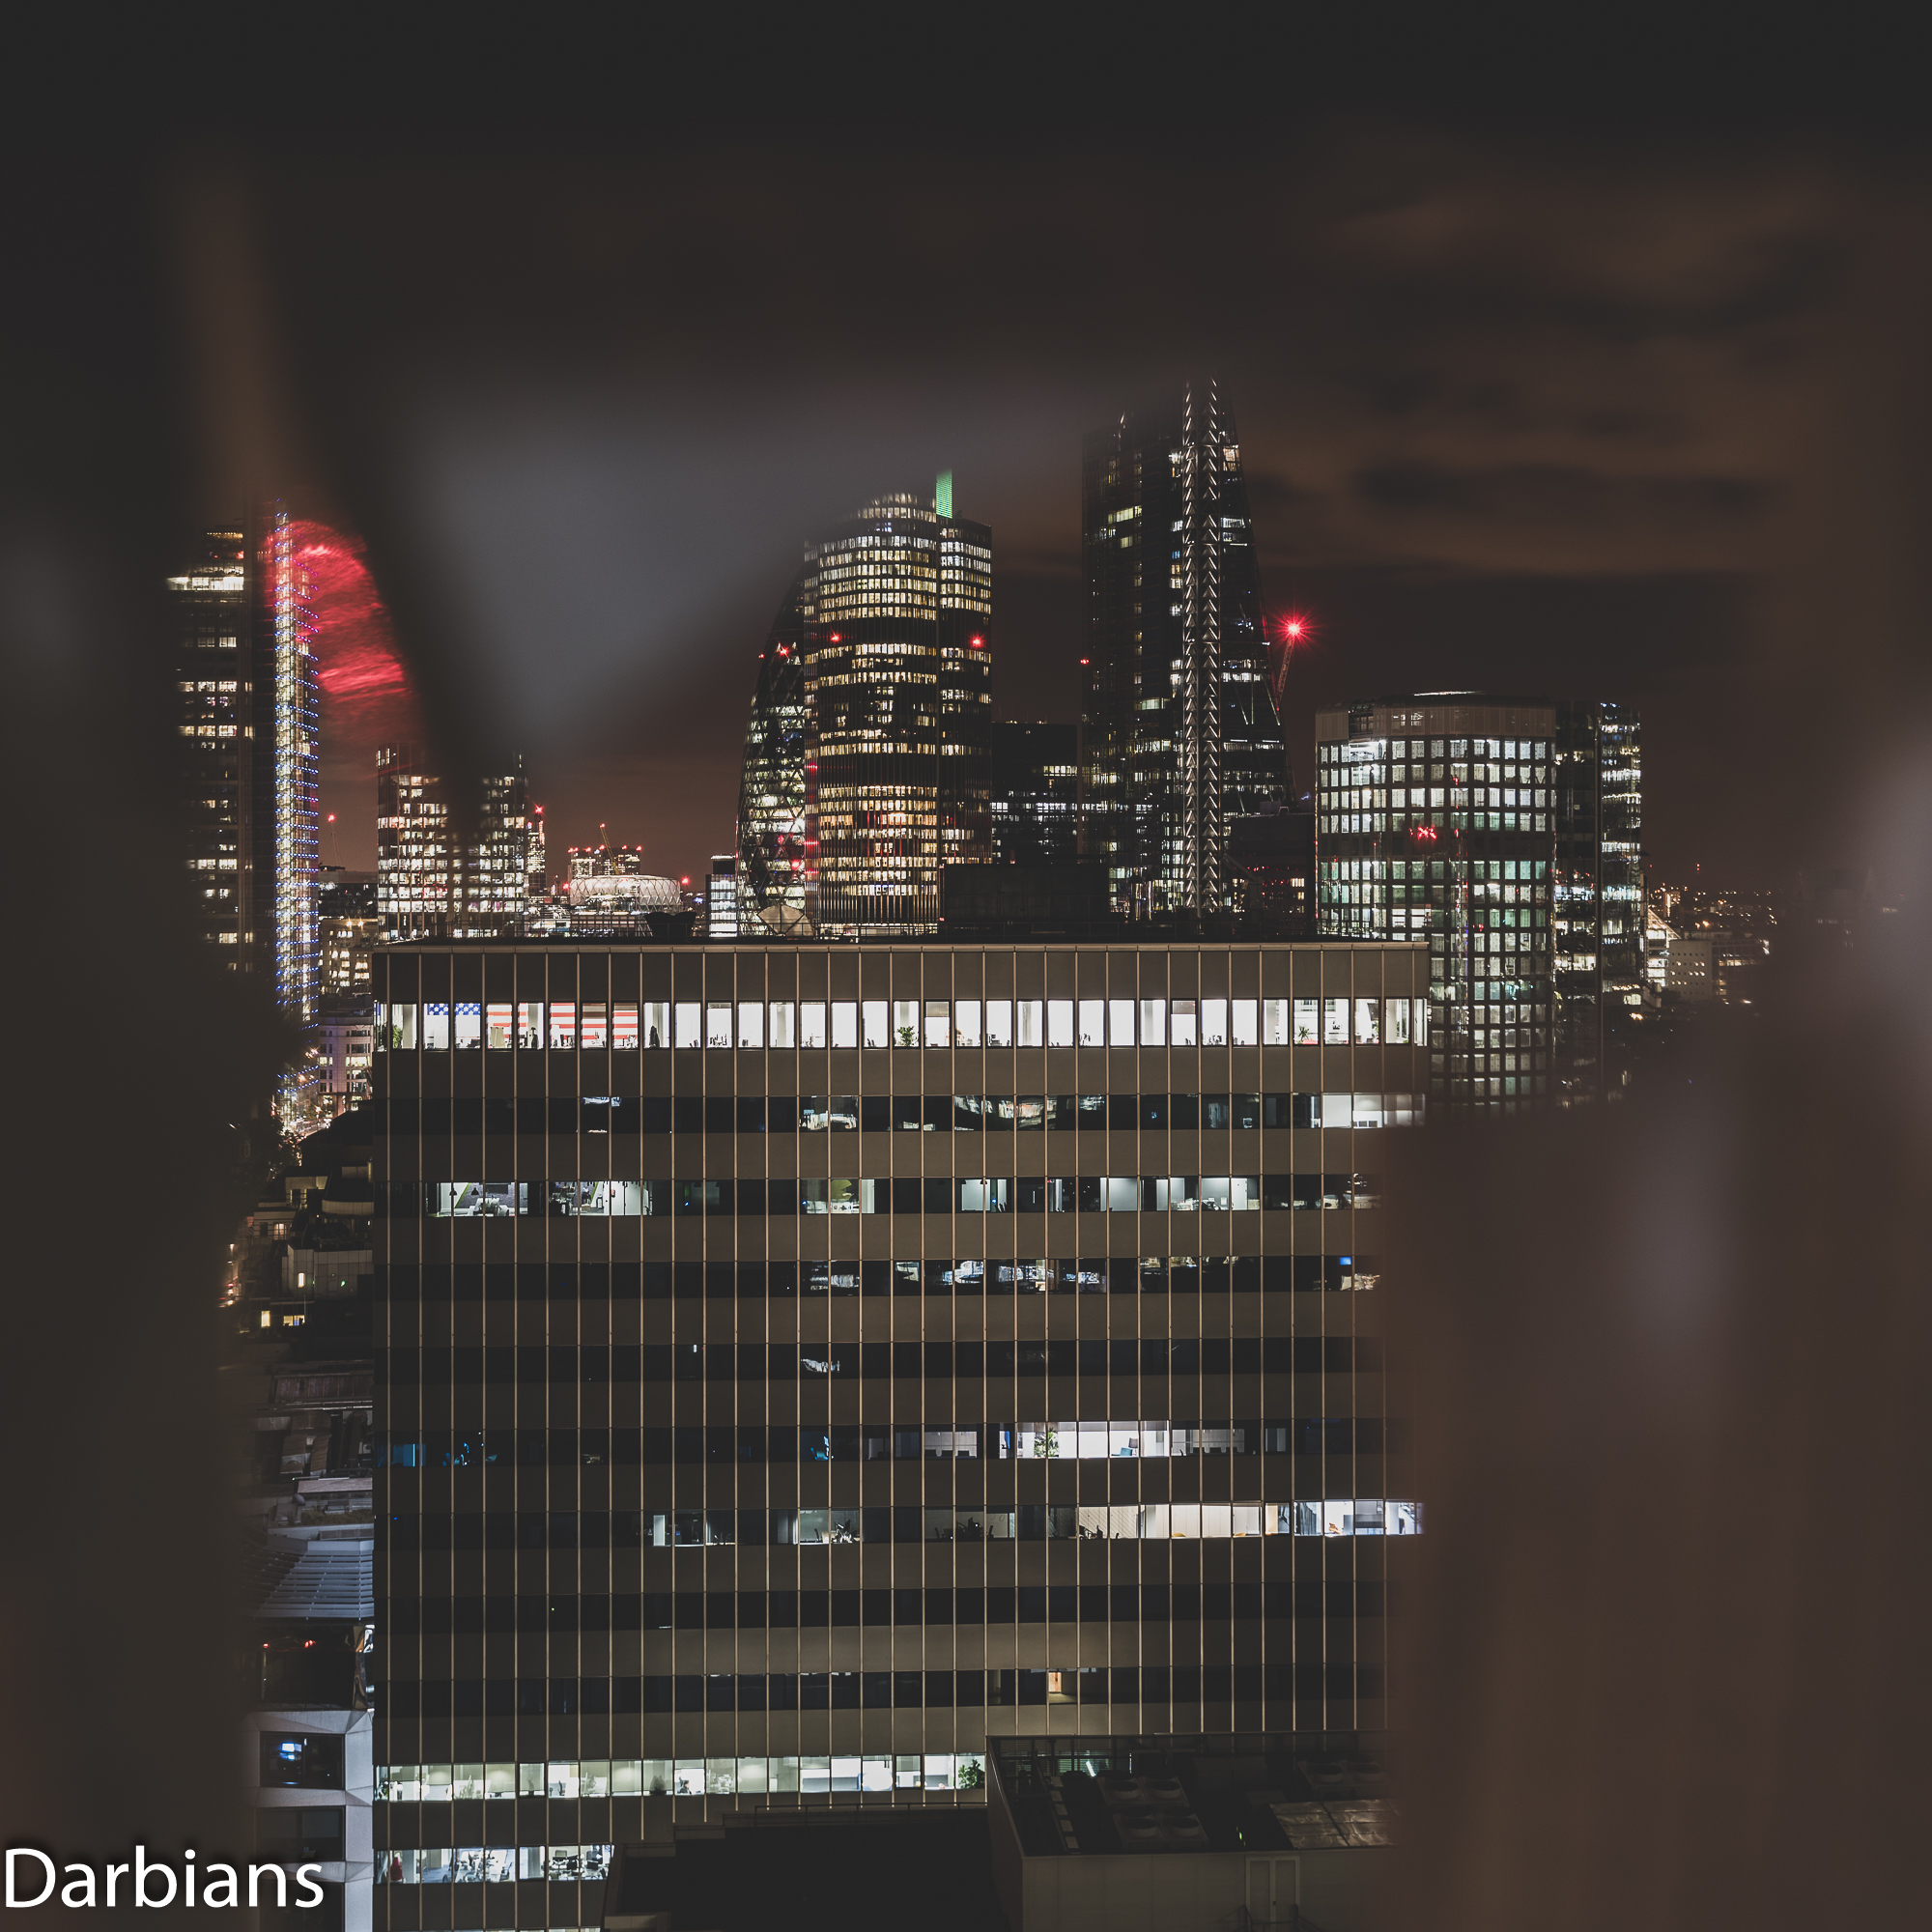 In the frame we have…110 Bishopsgate, The Gherkin peaking out behind Tower 42, The Cheesegrater and 1 Angel Court with City Tower in the foreground.